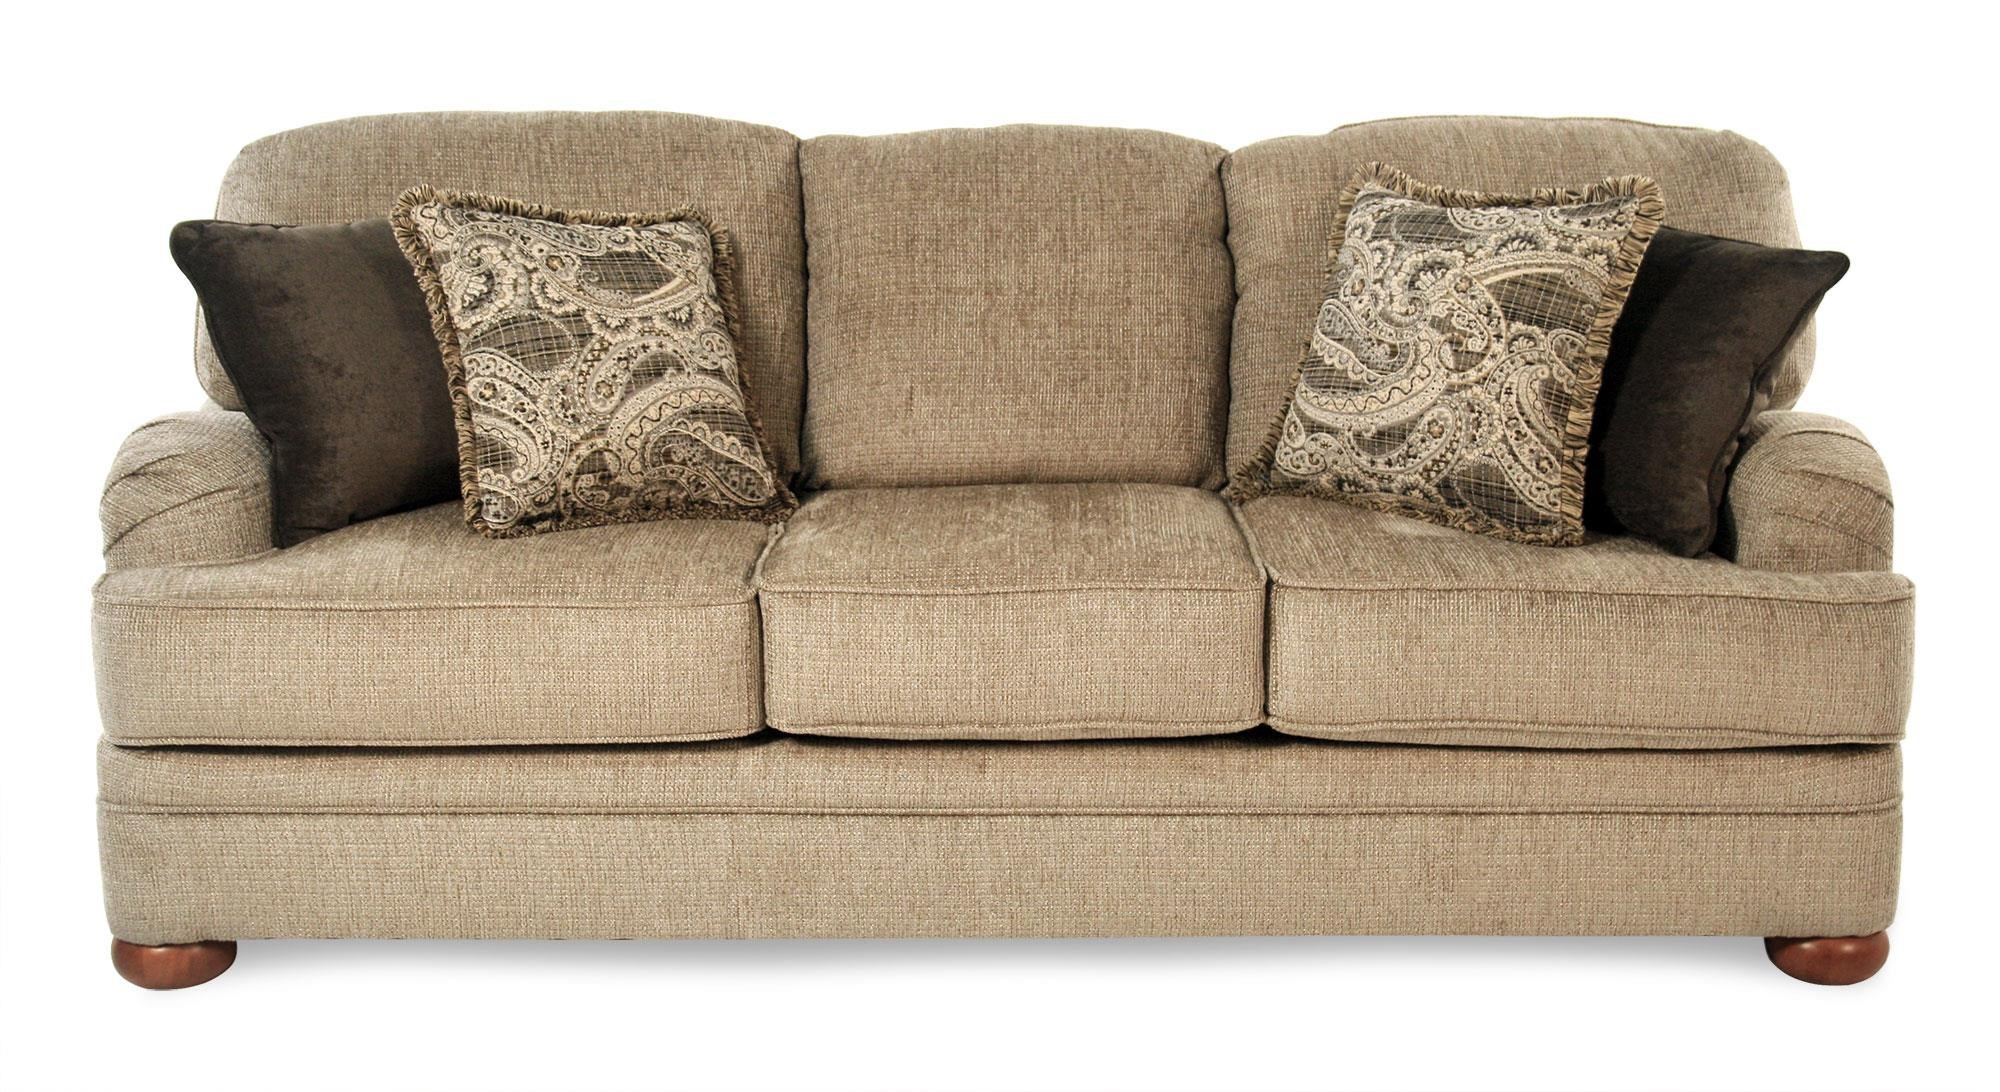 Serta Upholstery Orion Sofa - Item Number: 5500S-BEIGE